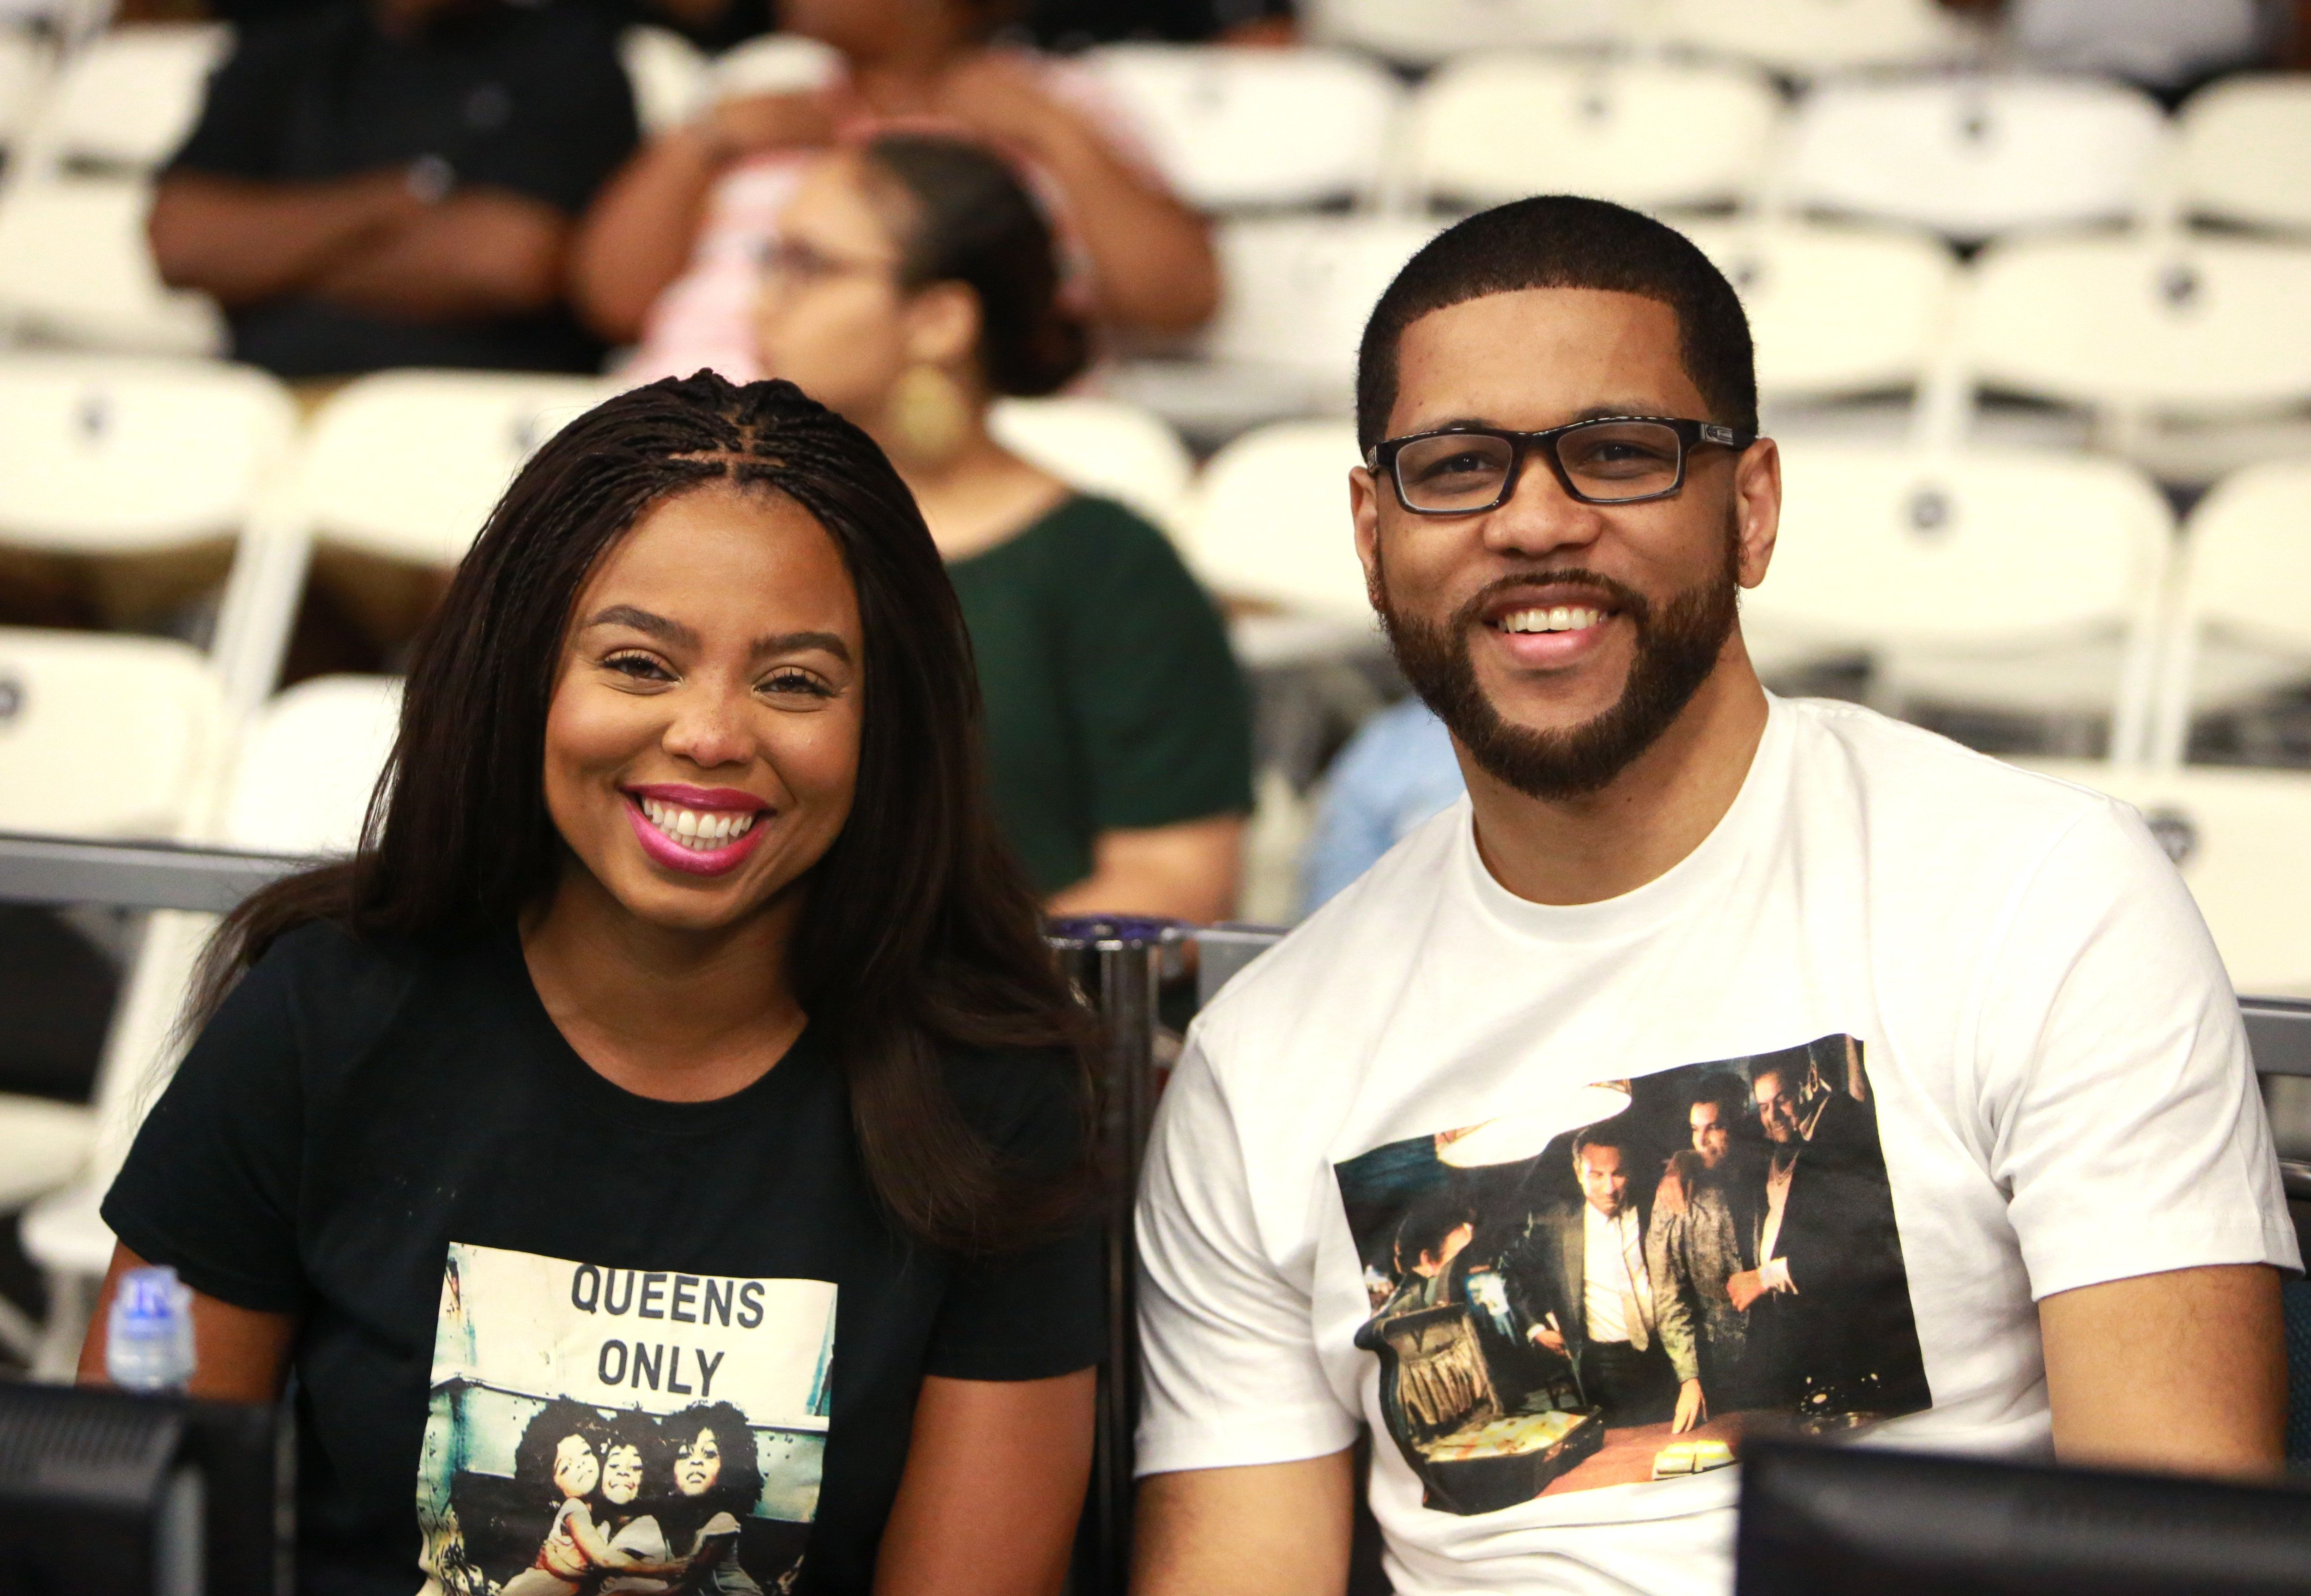 LOS ANGELES, CA - JUNE 24:  Jemele Hill (L) and Michael Smith at the Slam Dunk Contest during the 2017 BET Experience at Los Angeles Convention Center on June 24, 2017 in Los Angeles, California.  (Photo by Leon Bennett/Getty Images for BET)